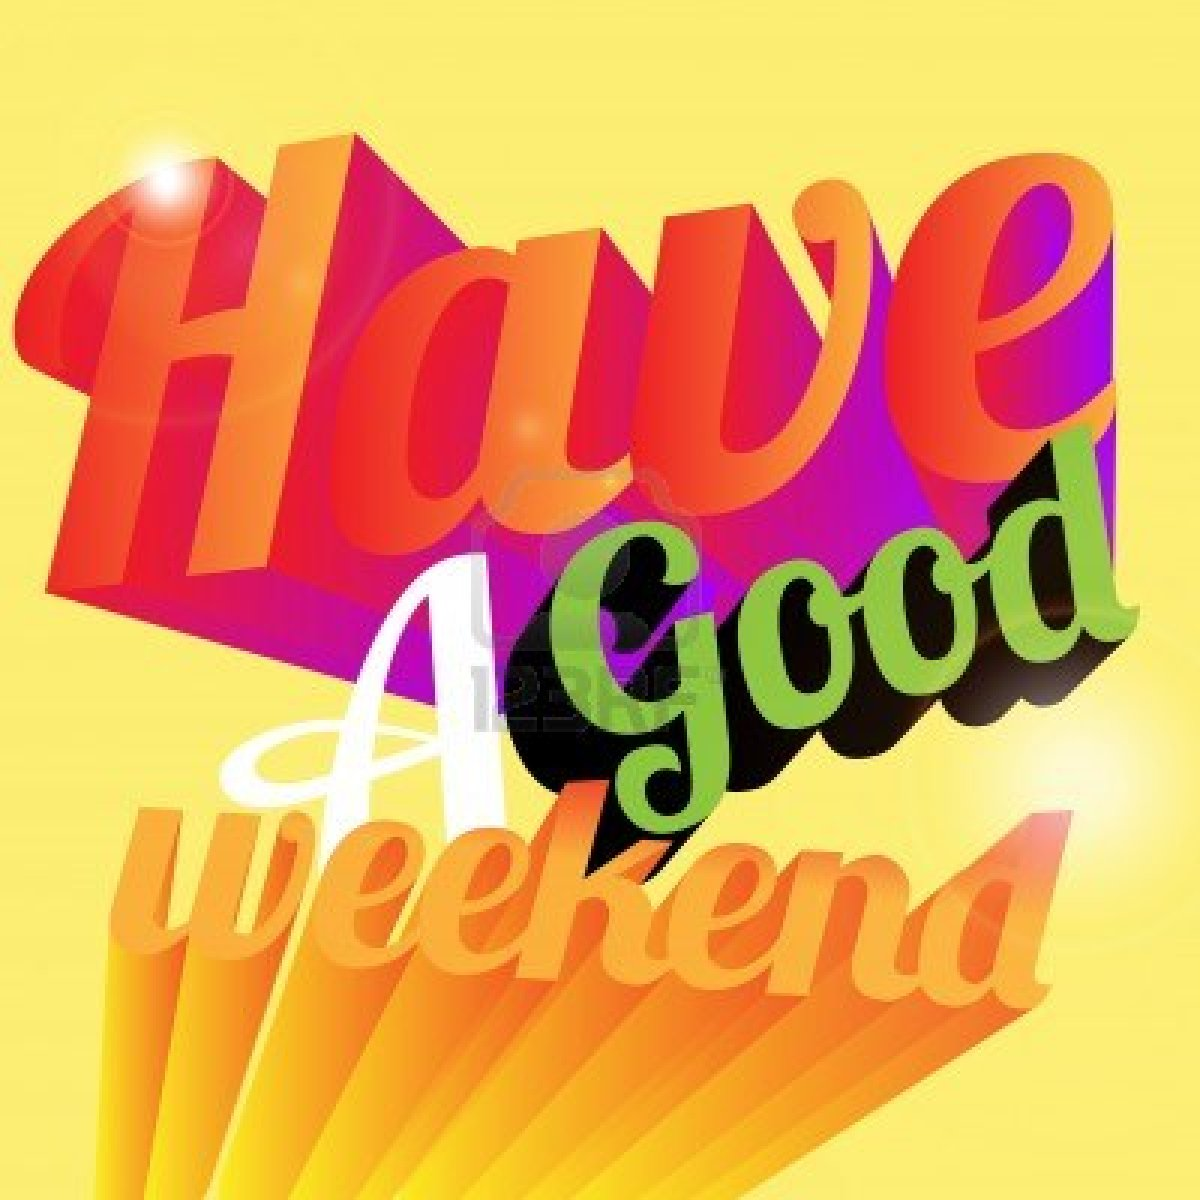 Good Weekend Graphics 1 Jpg  1200 1200  Hello Weekend Weekend Fun